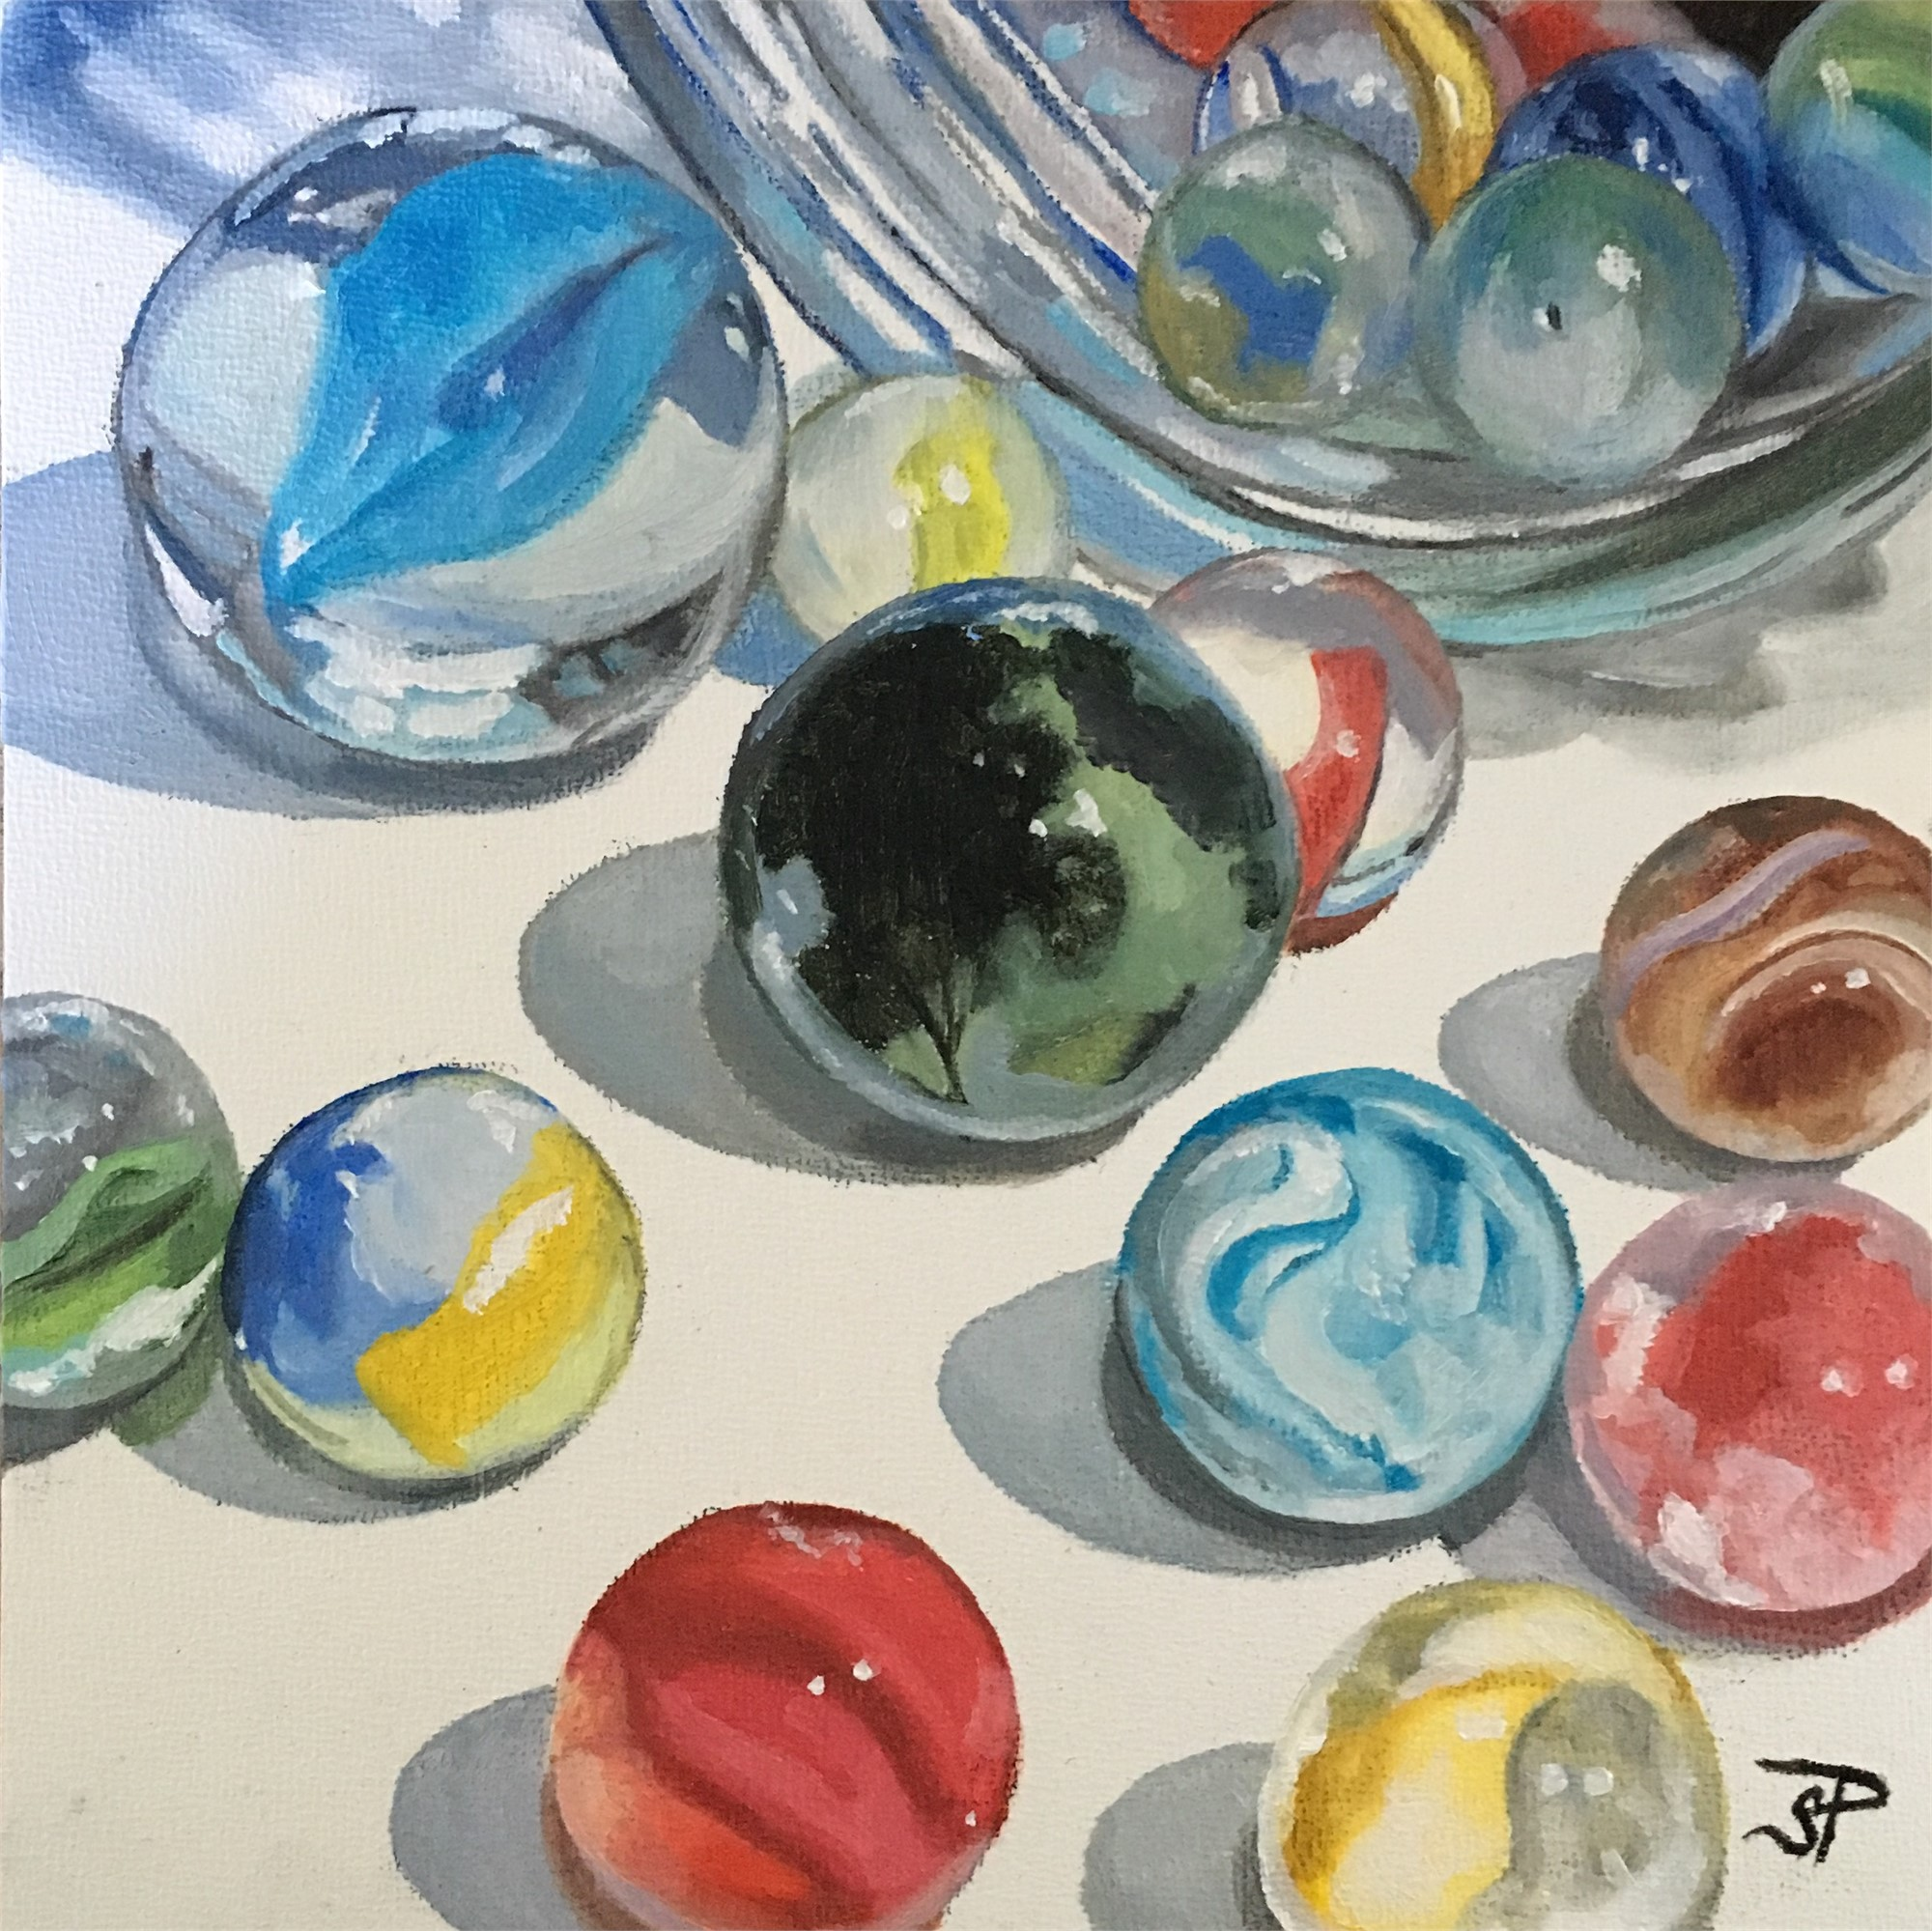 Losing My Marbles by Sharon Pomales